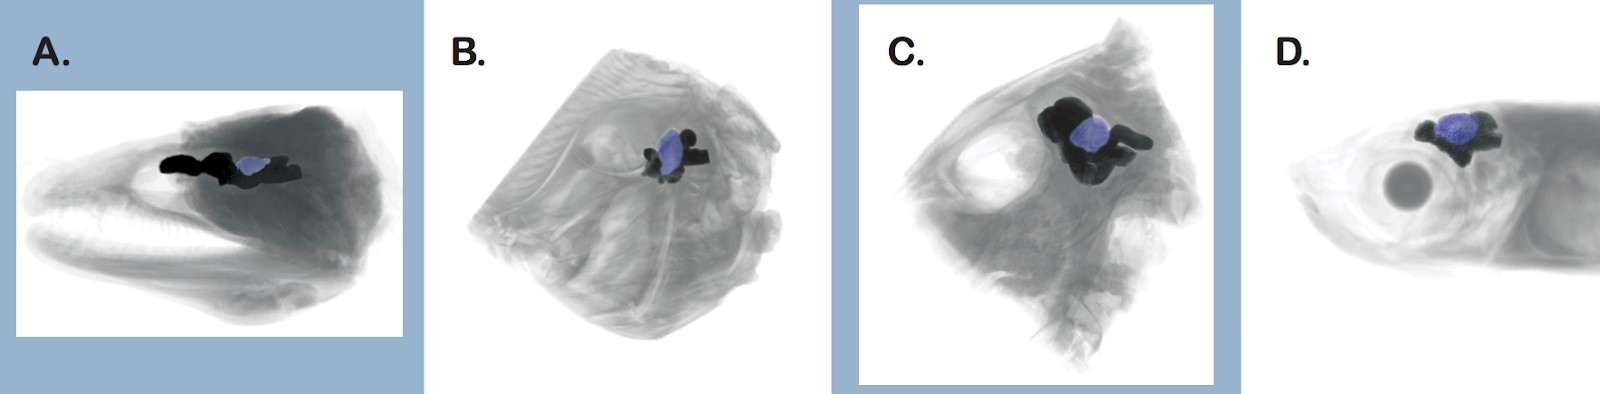 Images of fish brains scanned in our work with the visual processing region colored in blue. A. Moray Eel. B. Peacock Flounder. C. Triggerfish. D. Silverside. Images taken from Iglesias et al. 2018.